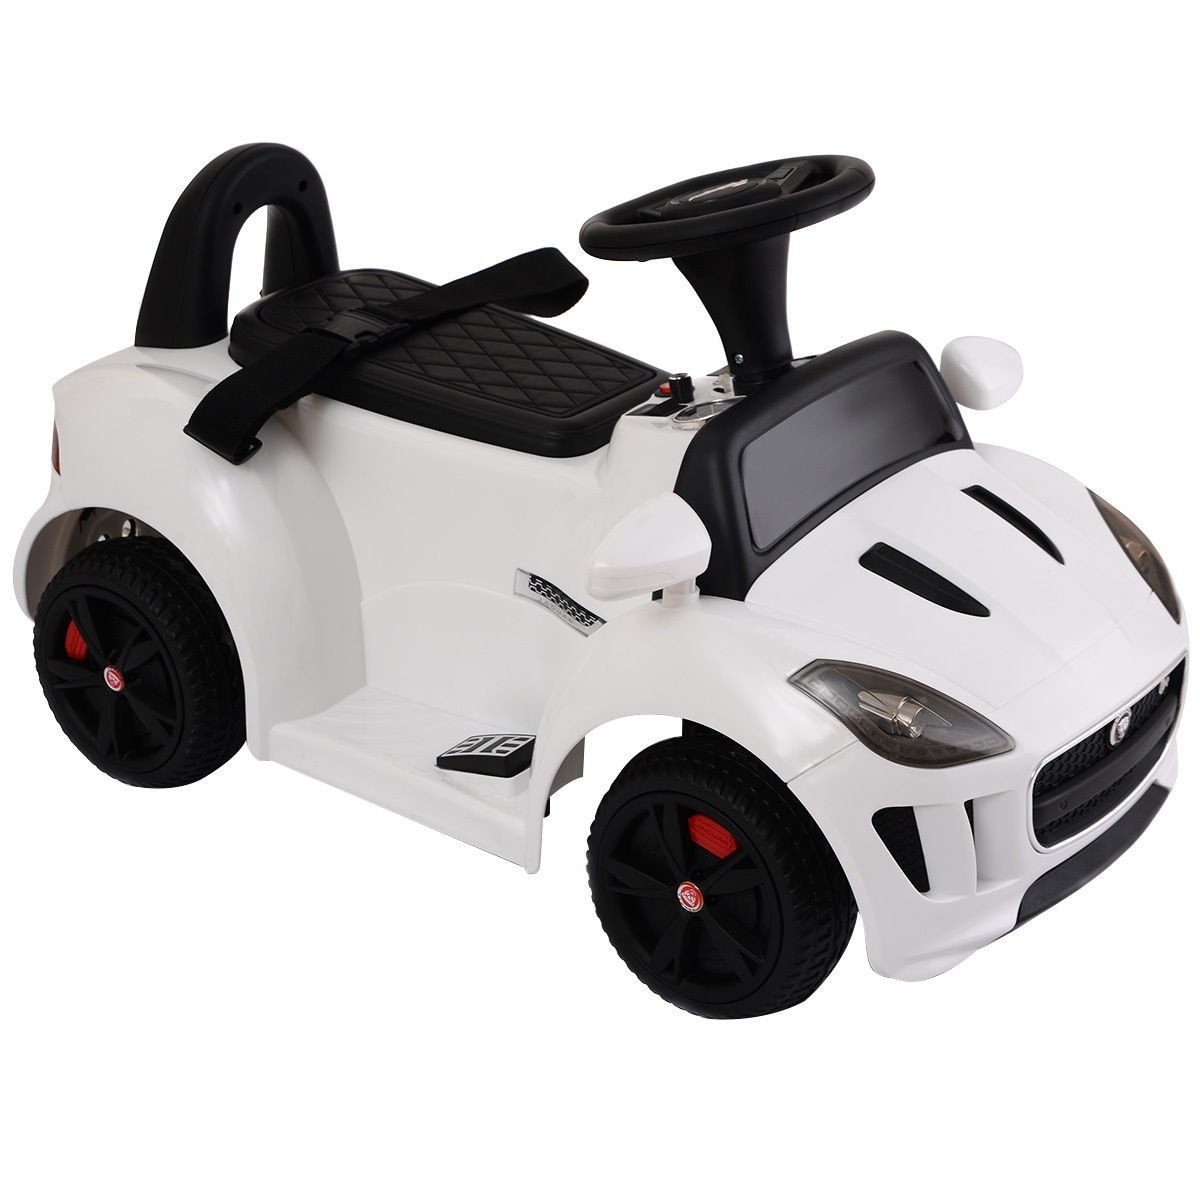 JAGUAR F-TYPE 6V Electric Kids Ride On Car Licensed MP3 Battery Power White